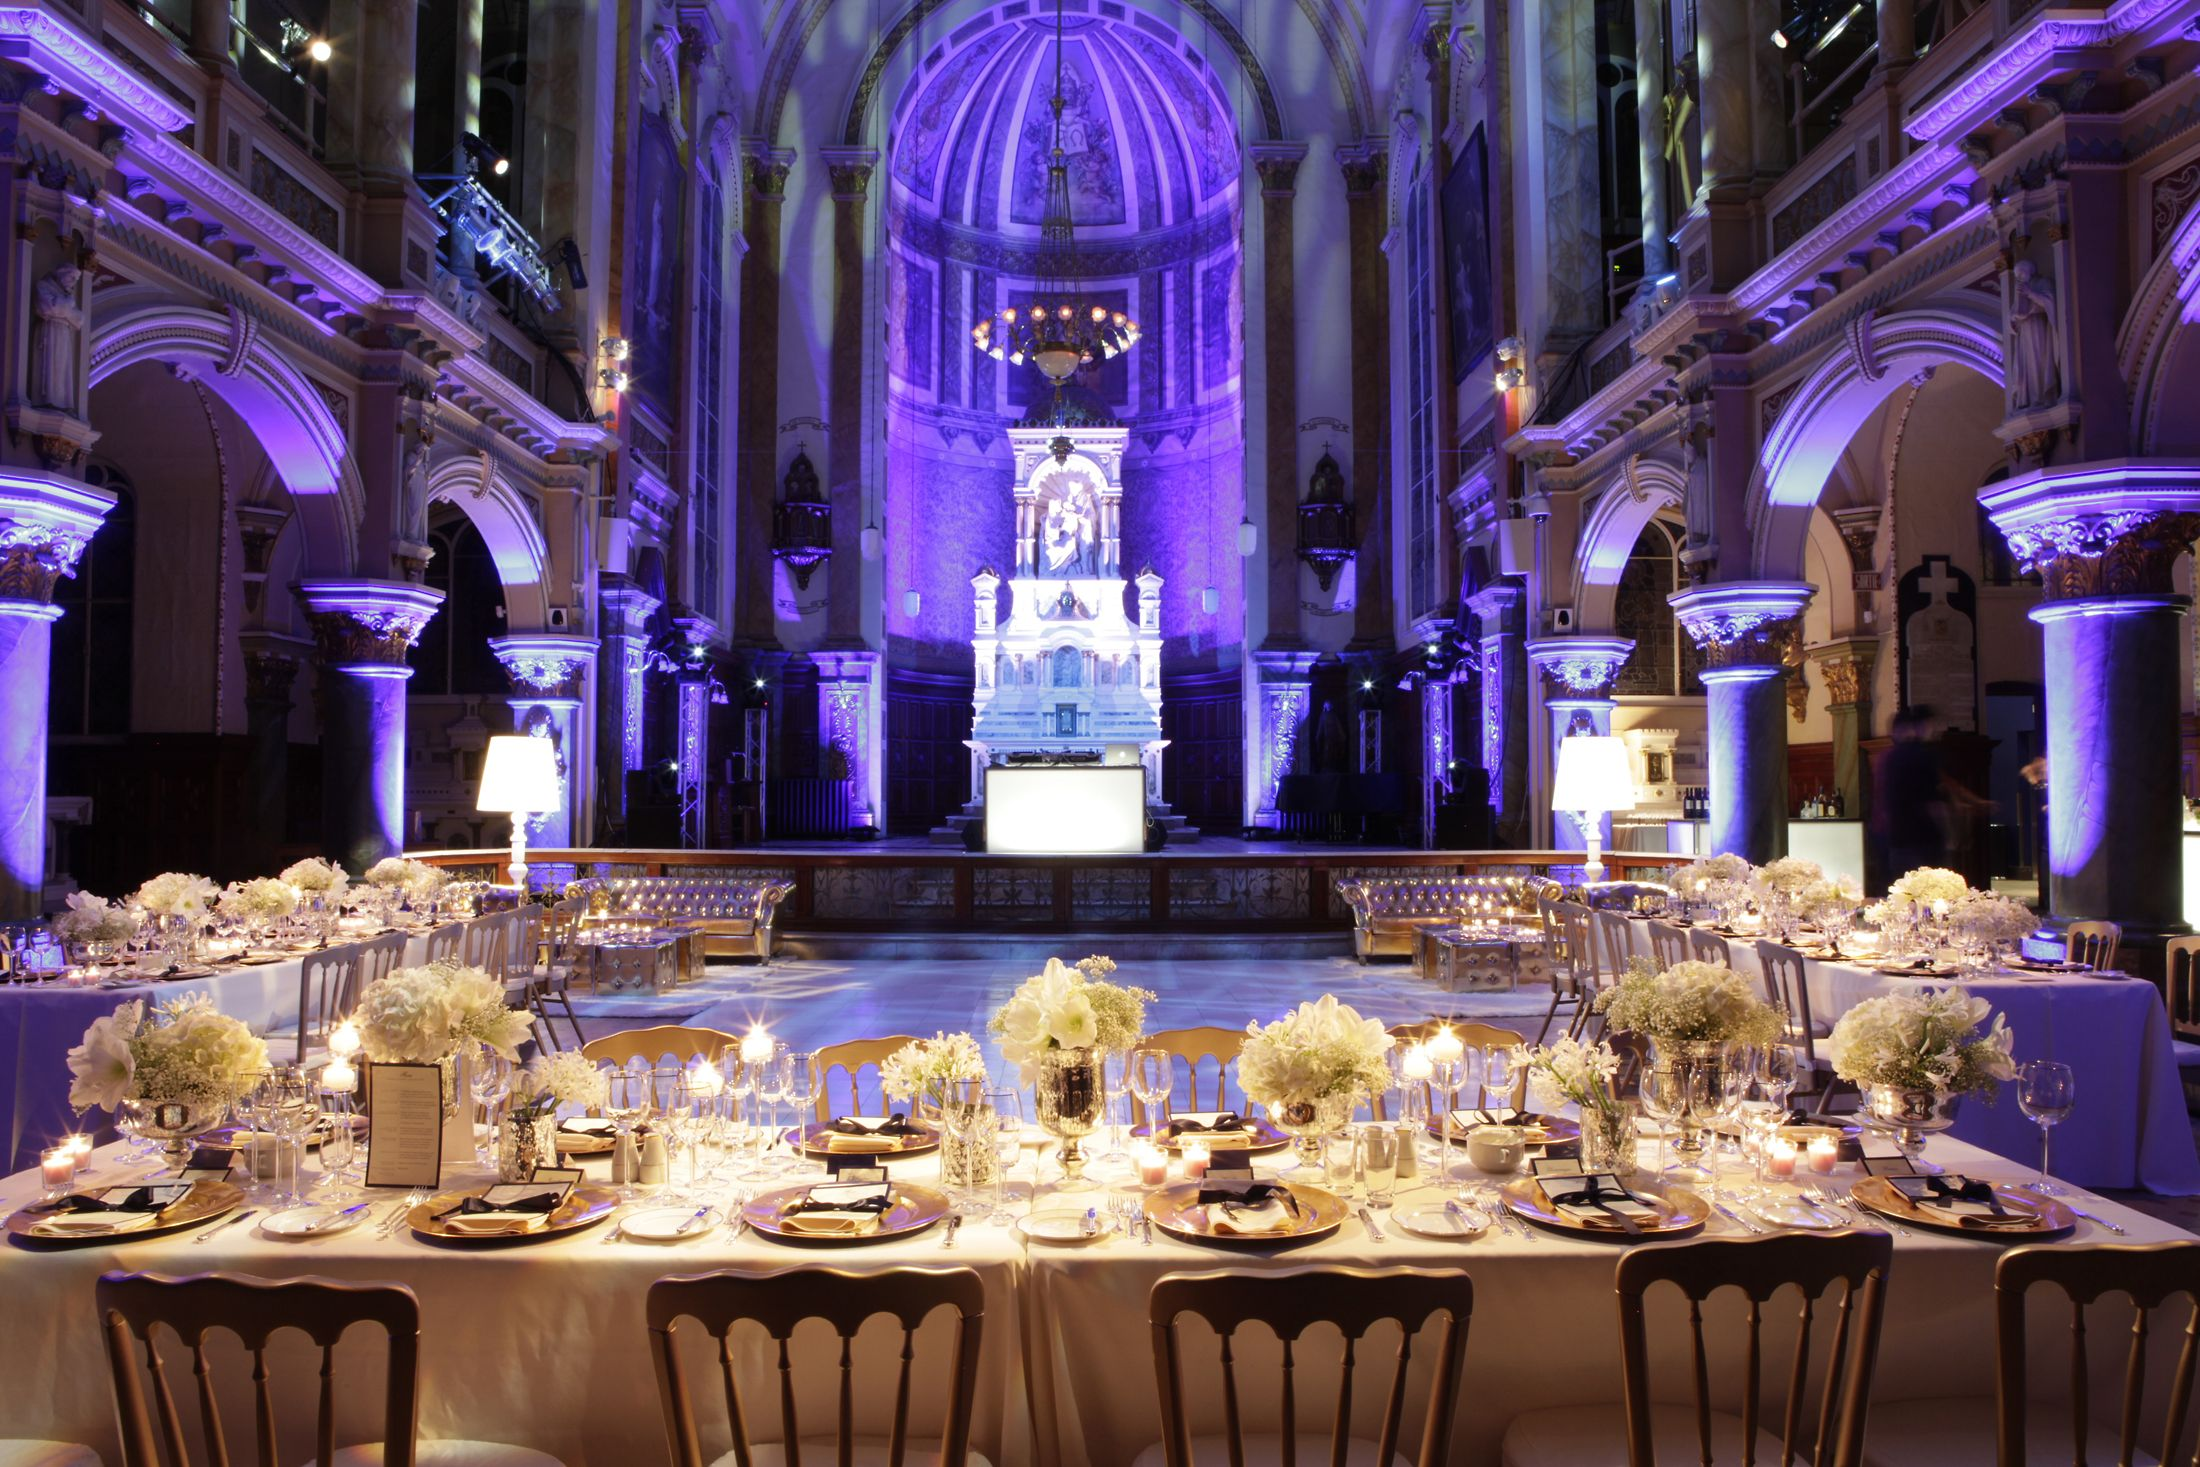 Nyc Wedding Venues In 50 100 Capacity Wedding Venues 404 Nyc ...